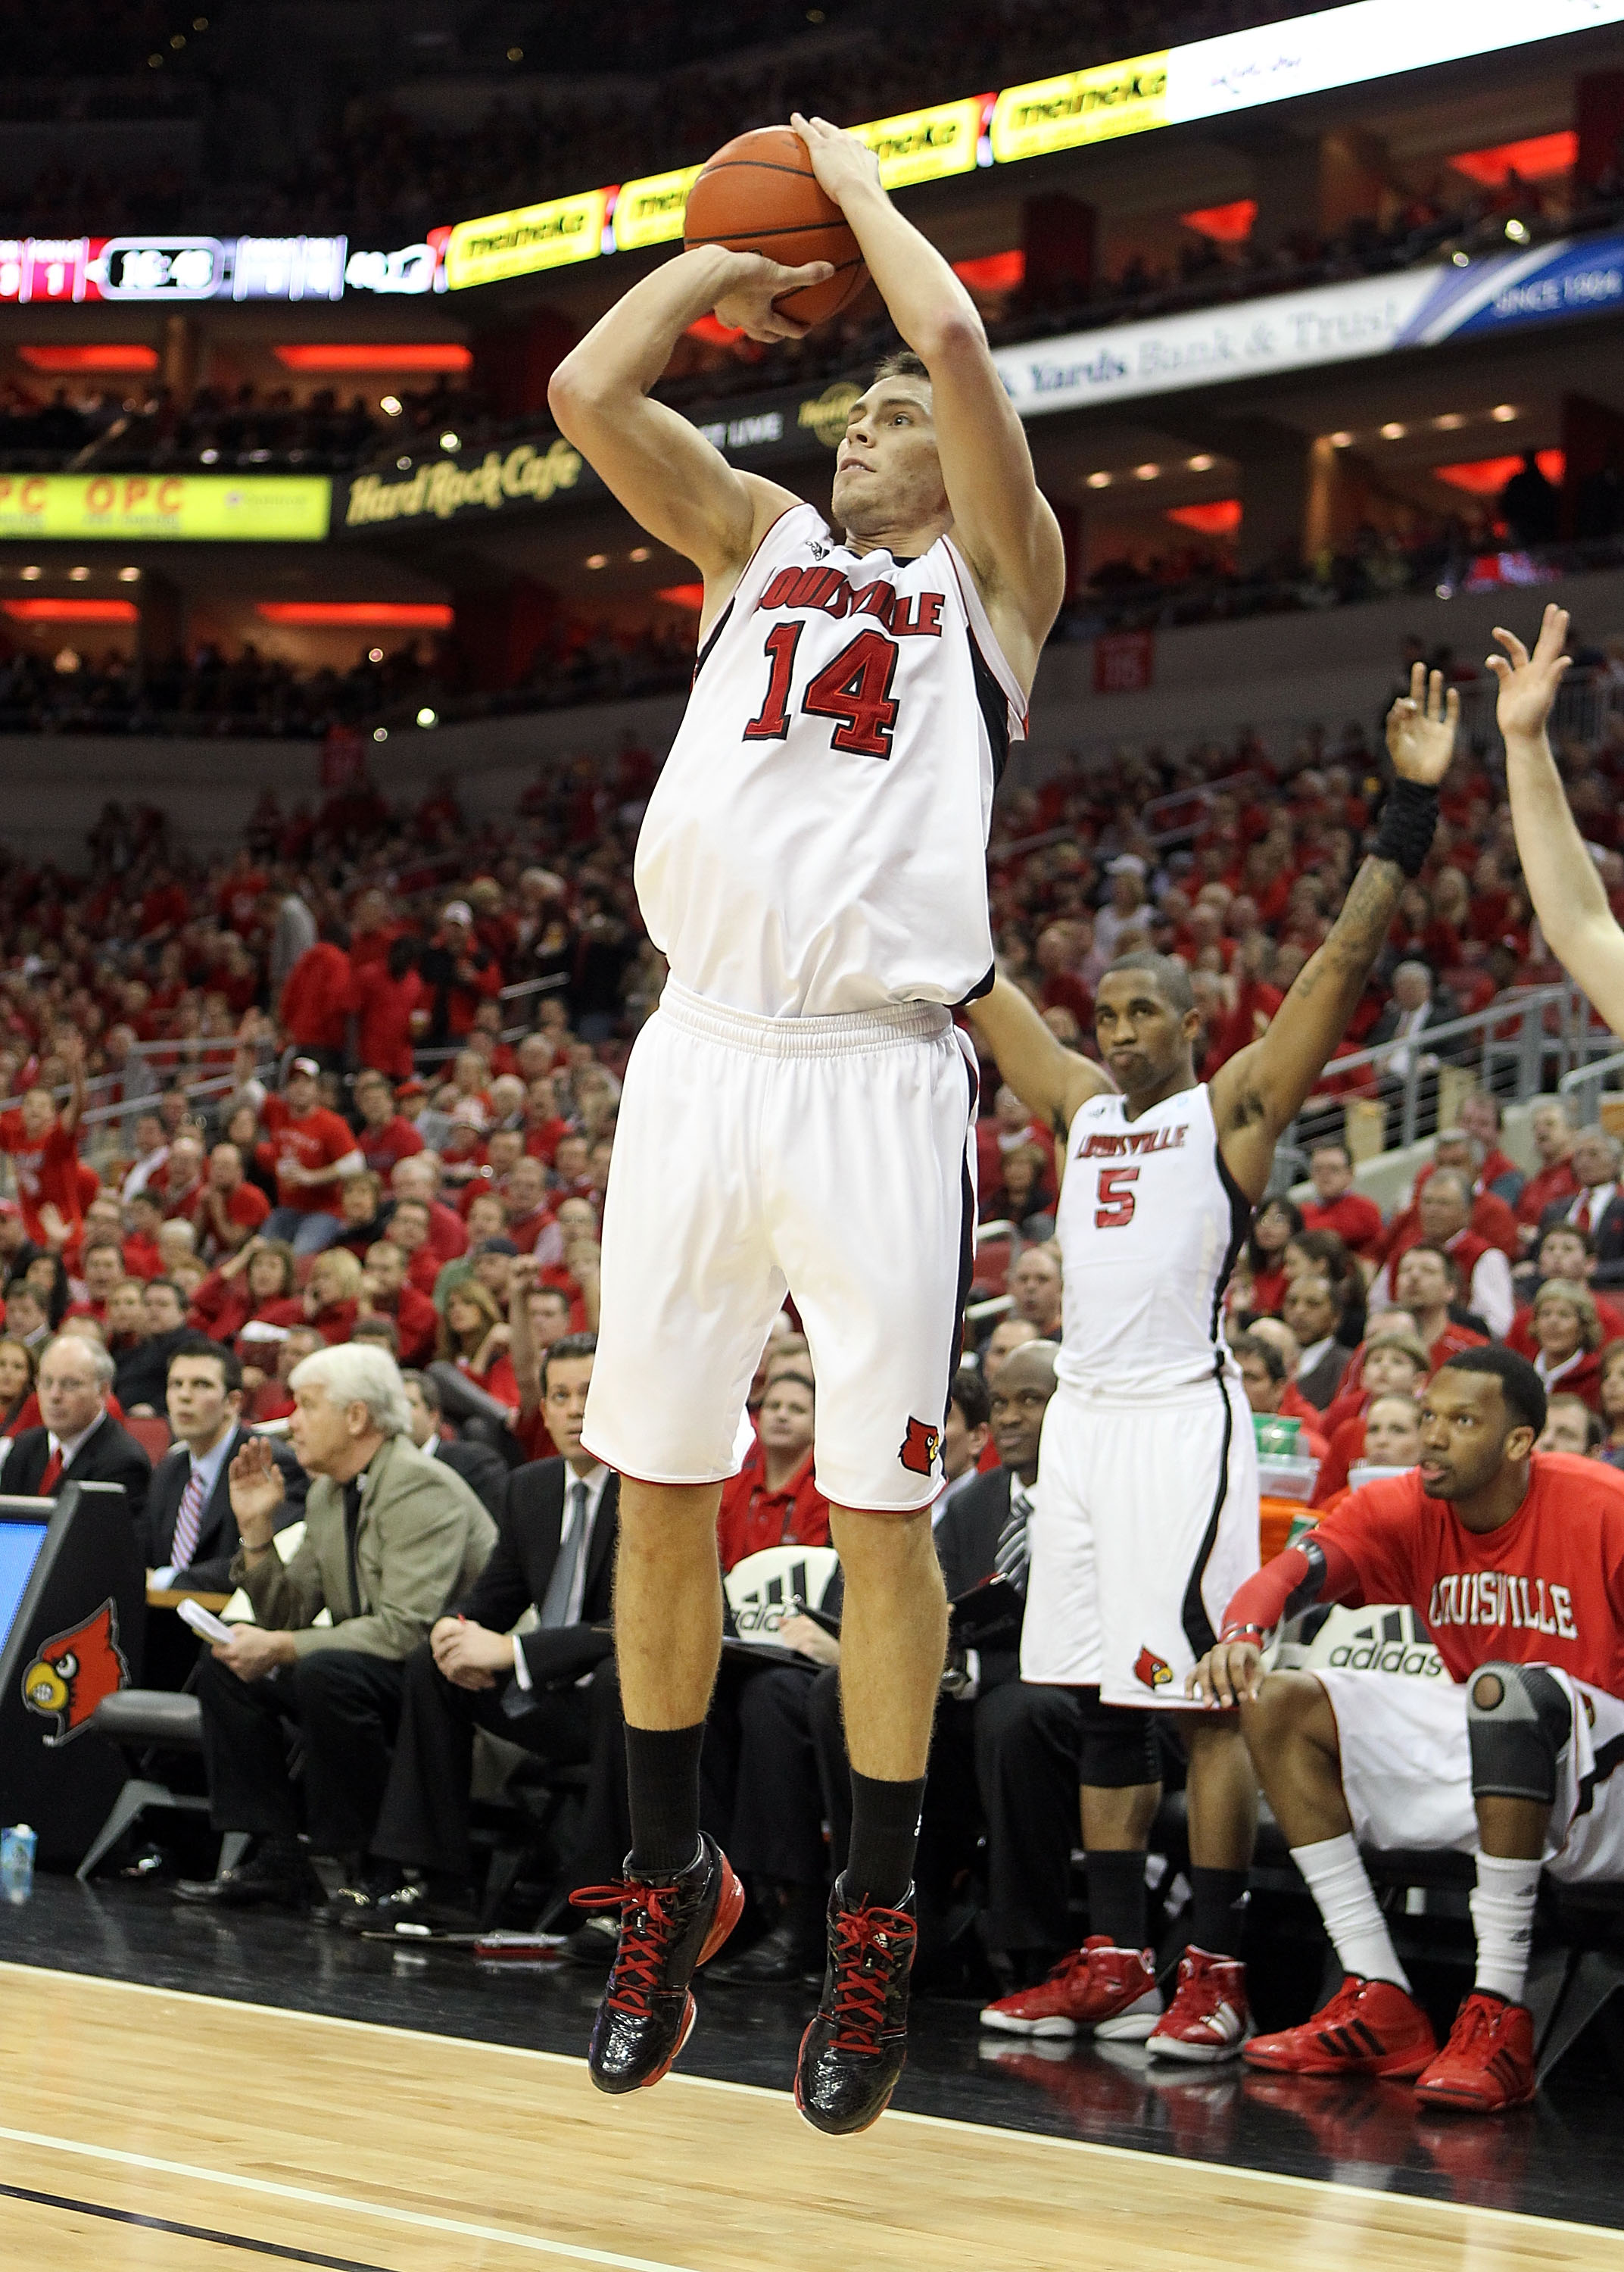 LOUISVILLE, KY - MARCH 02:  Kyle Kuric #14 of the Louisville Cardinals shoots the ball during the Big East Conference game against the Providence Friars at the KFC Yum! Center on March 2, 2011 in Louisville, Kentucky. Louisville won 87-60.  (Photo by Andy